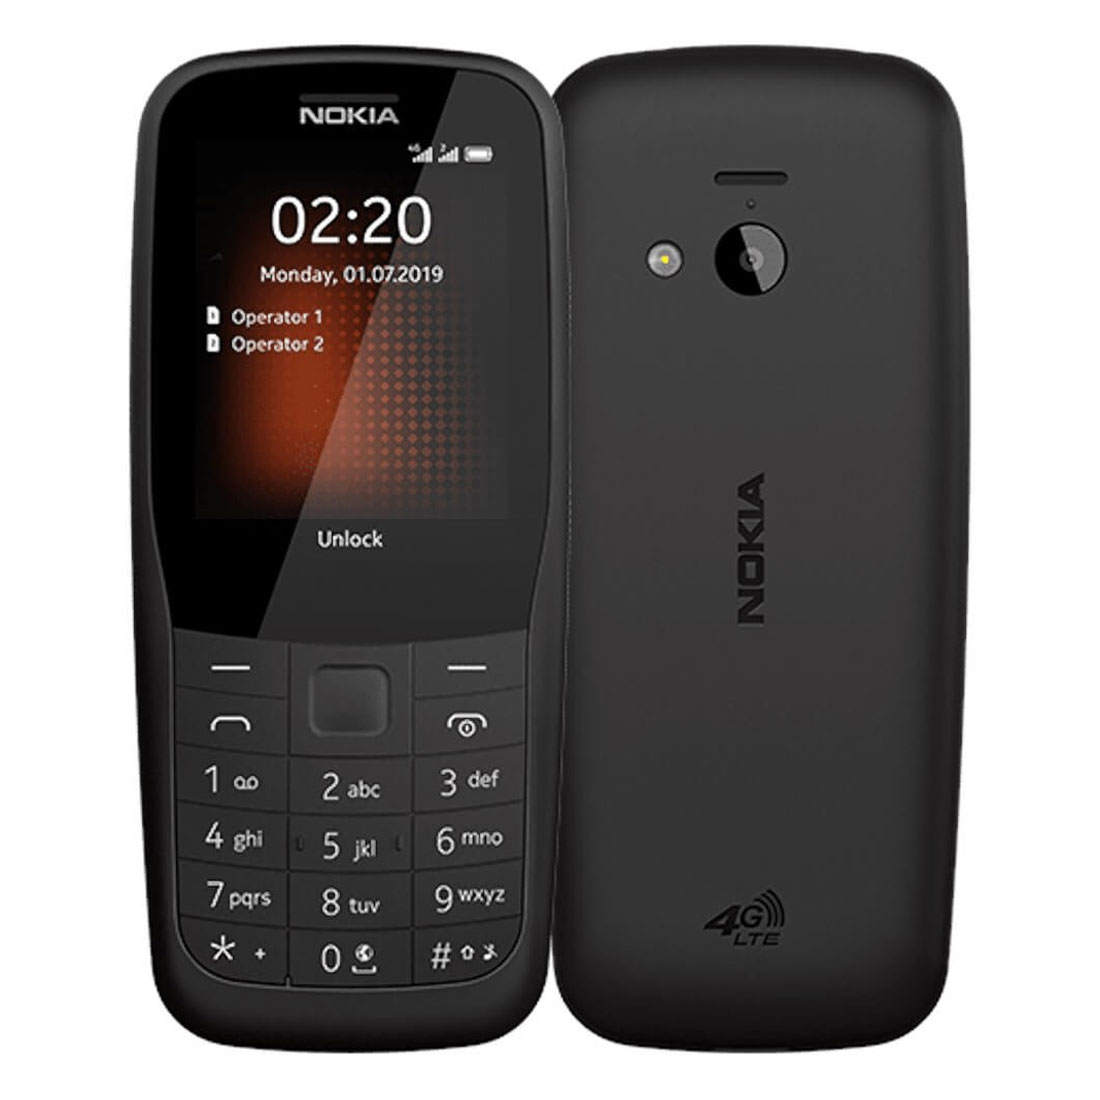 [Open Box - As New] Nokia 220 (4G Only, Keypad) - Black